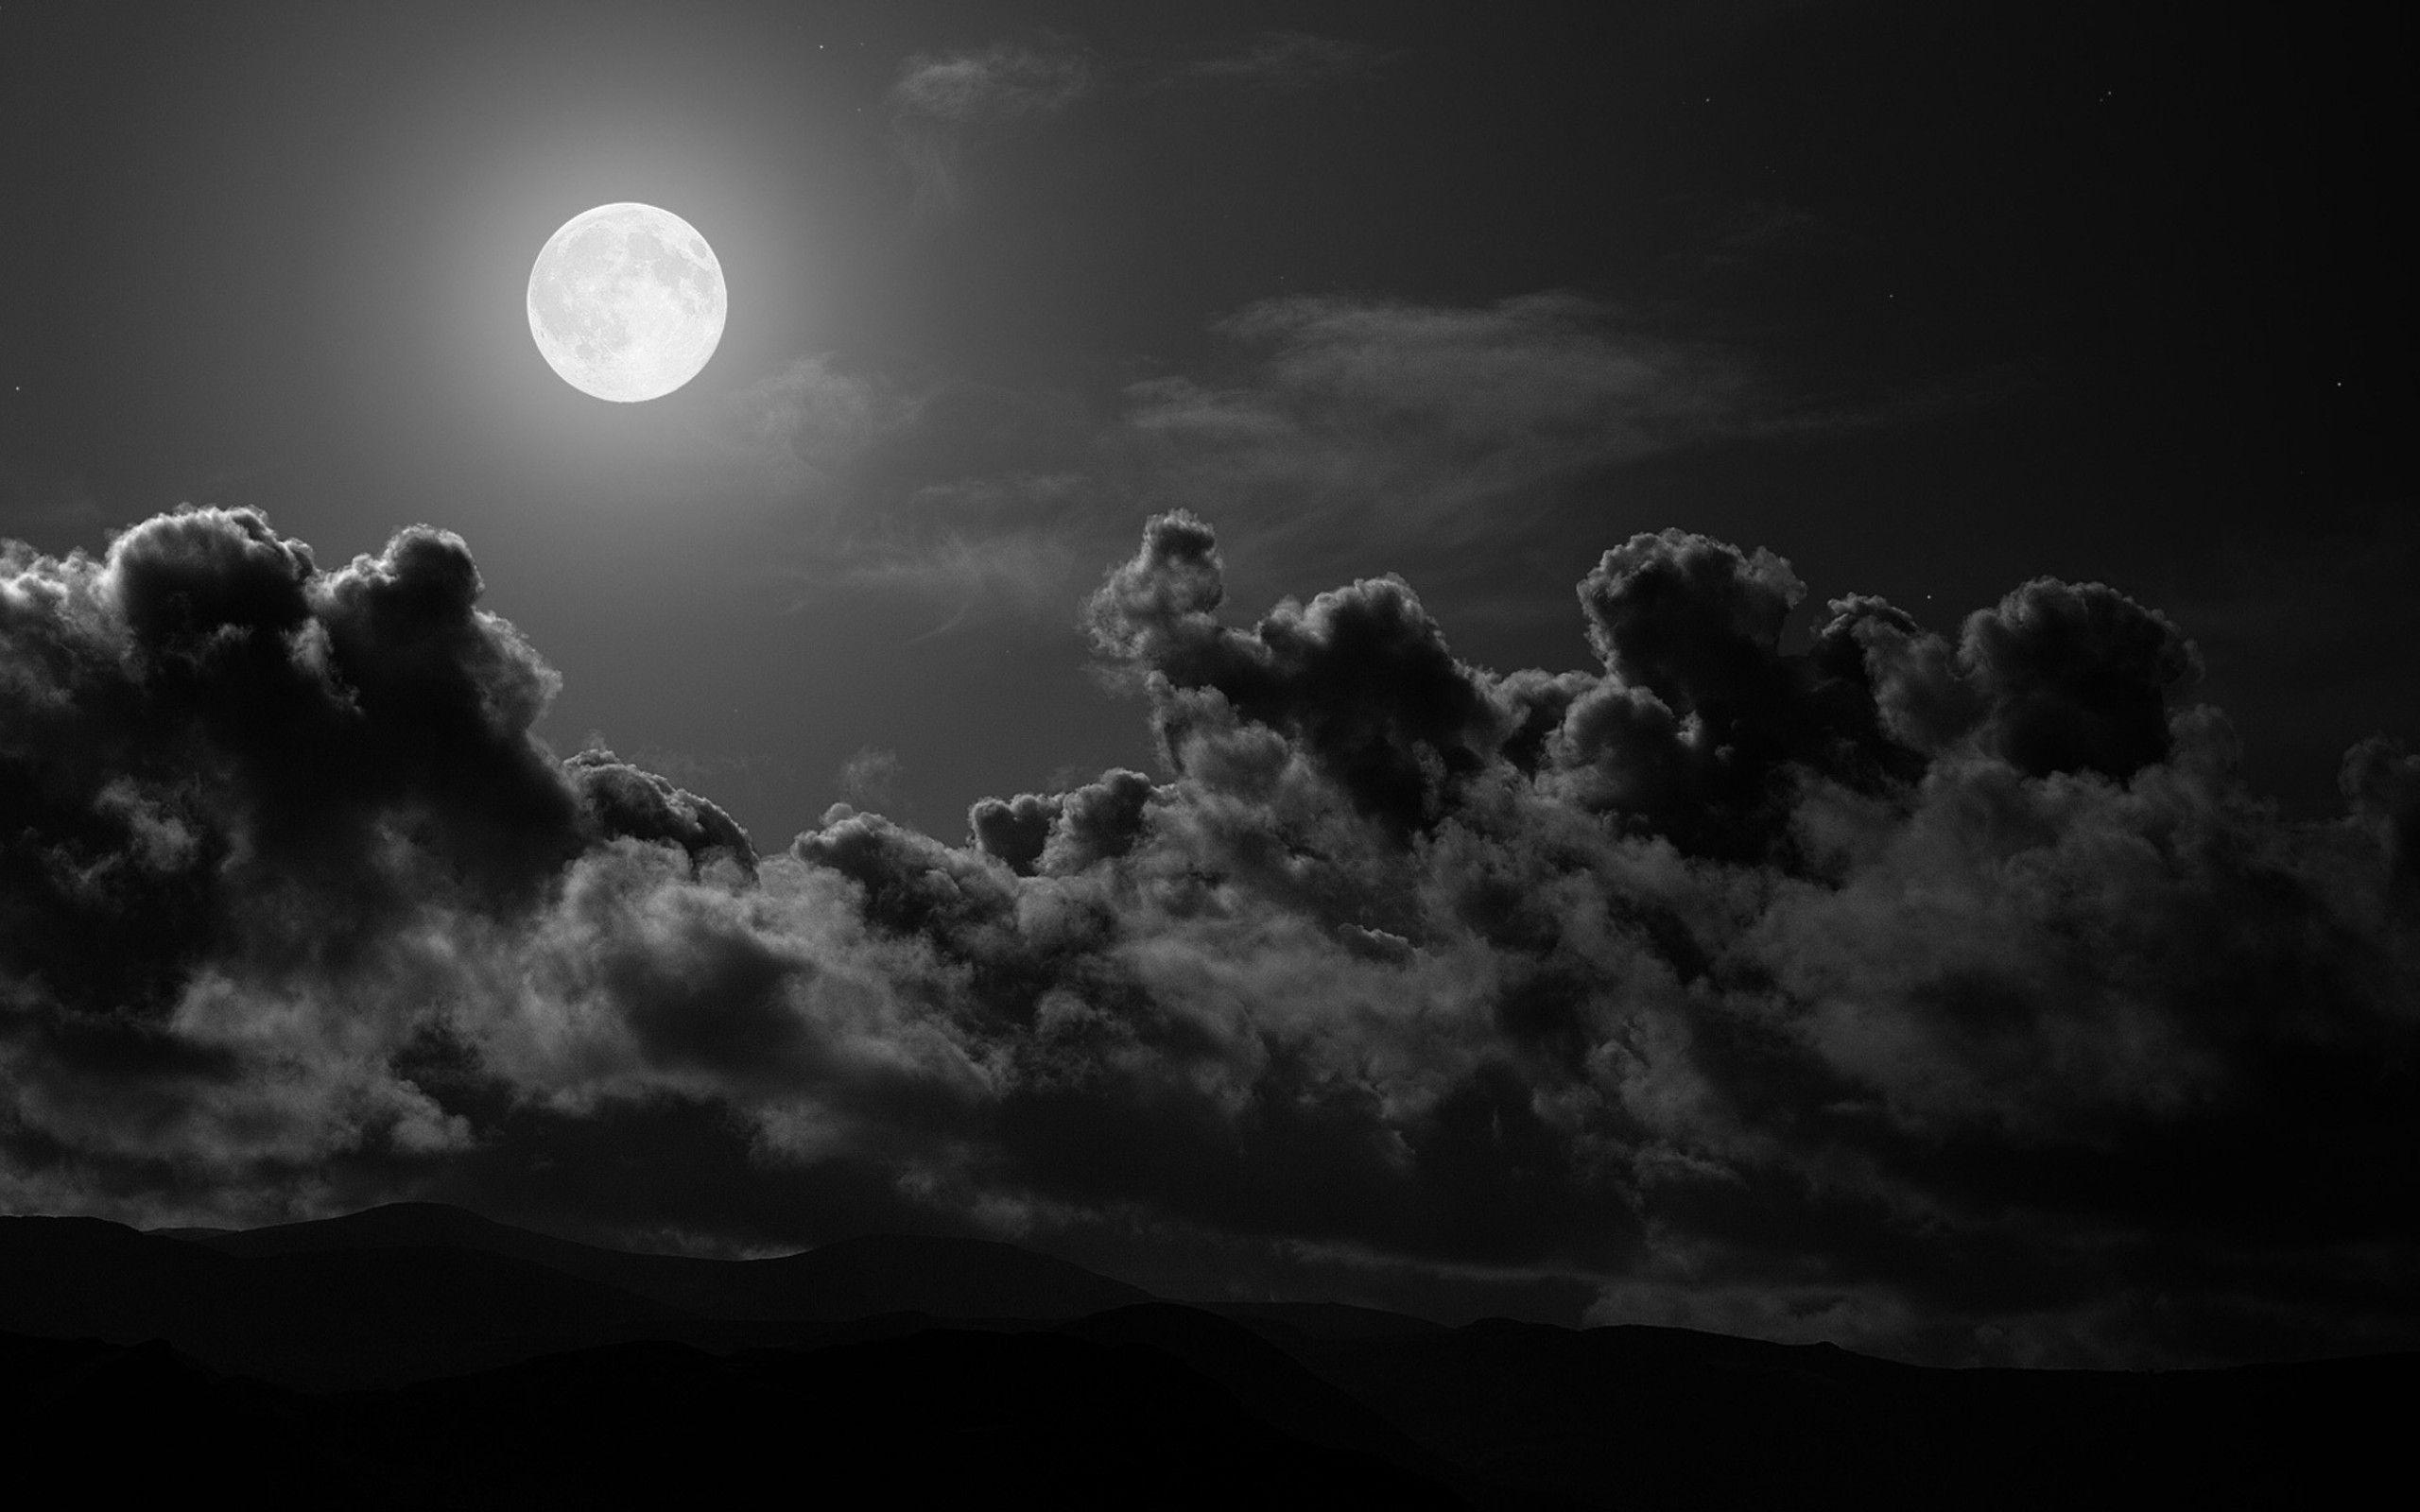 Dark Moon Wallpapers Full HD for HD Wallpapers Desktop 2560x1600 px